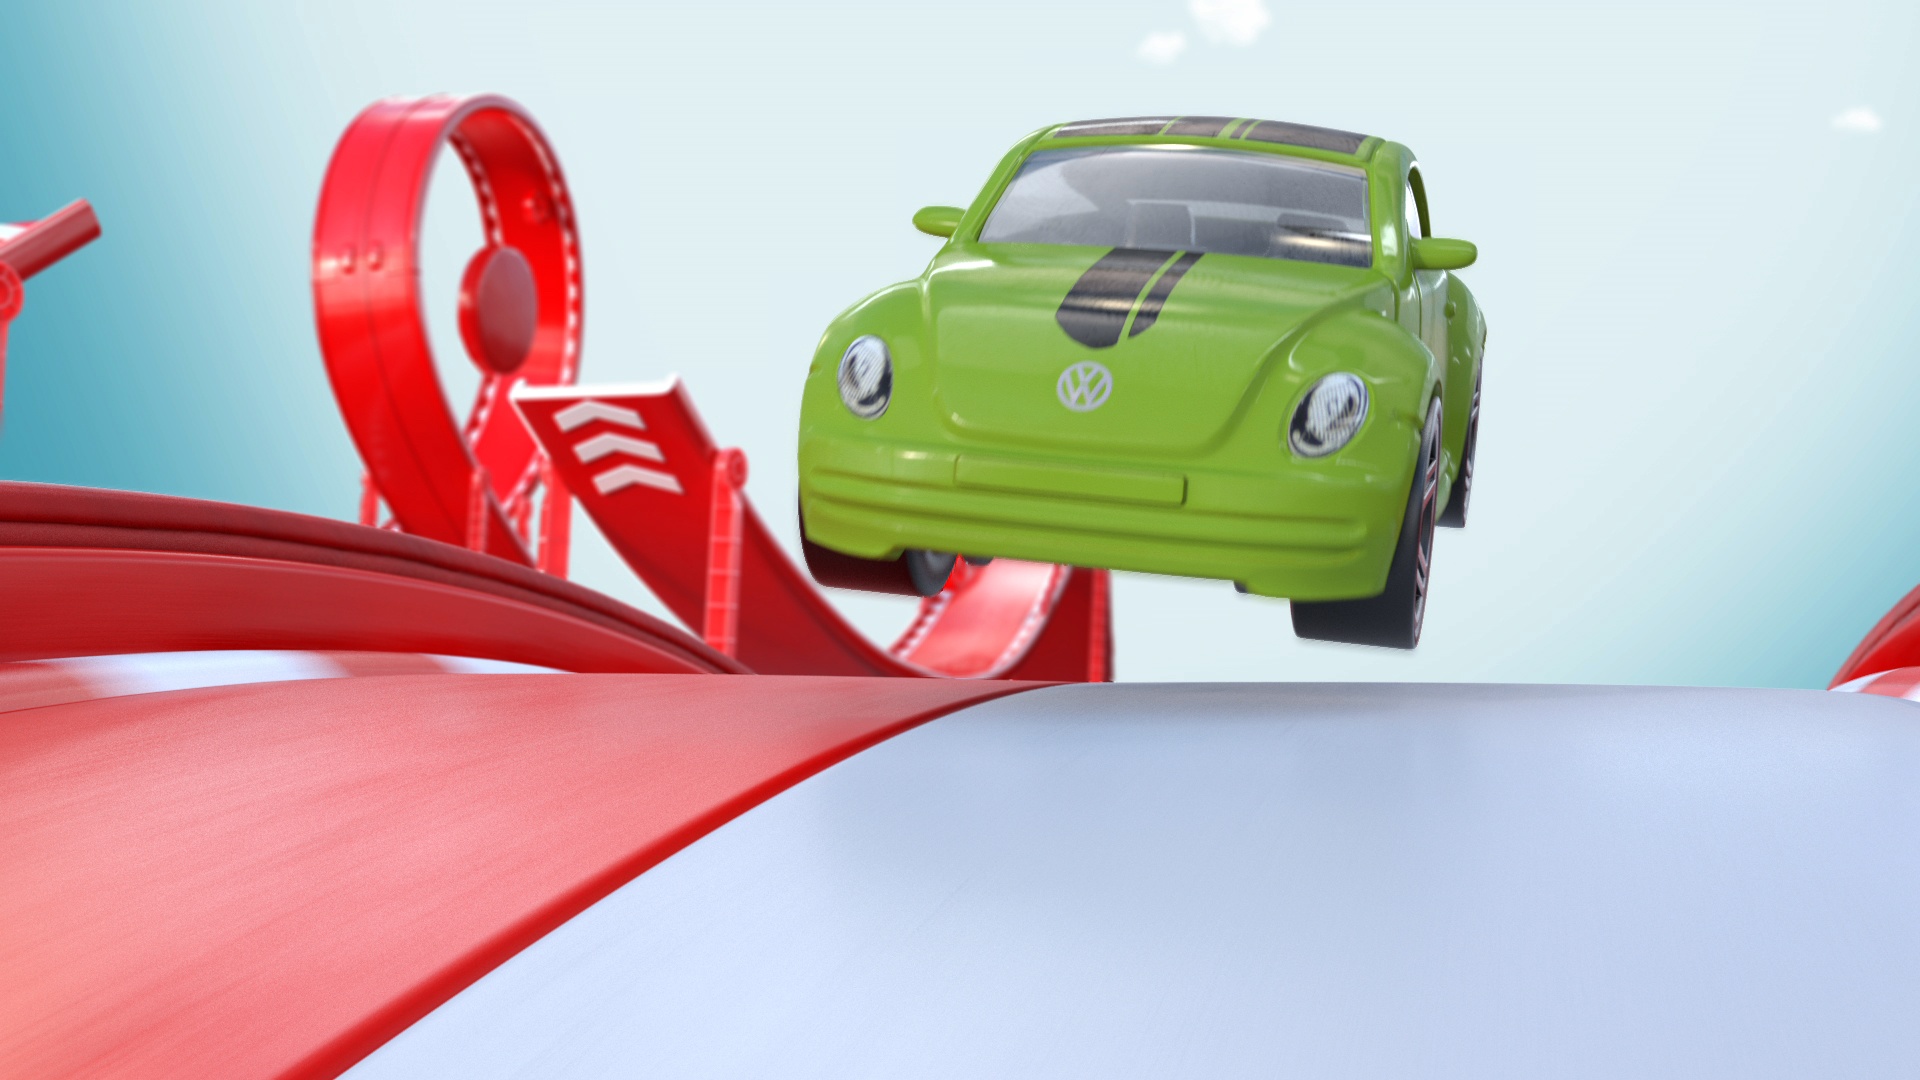 Frame from the finished ad of the CGI Hot Wheels car in flight.